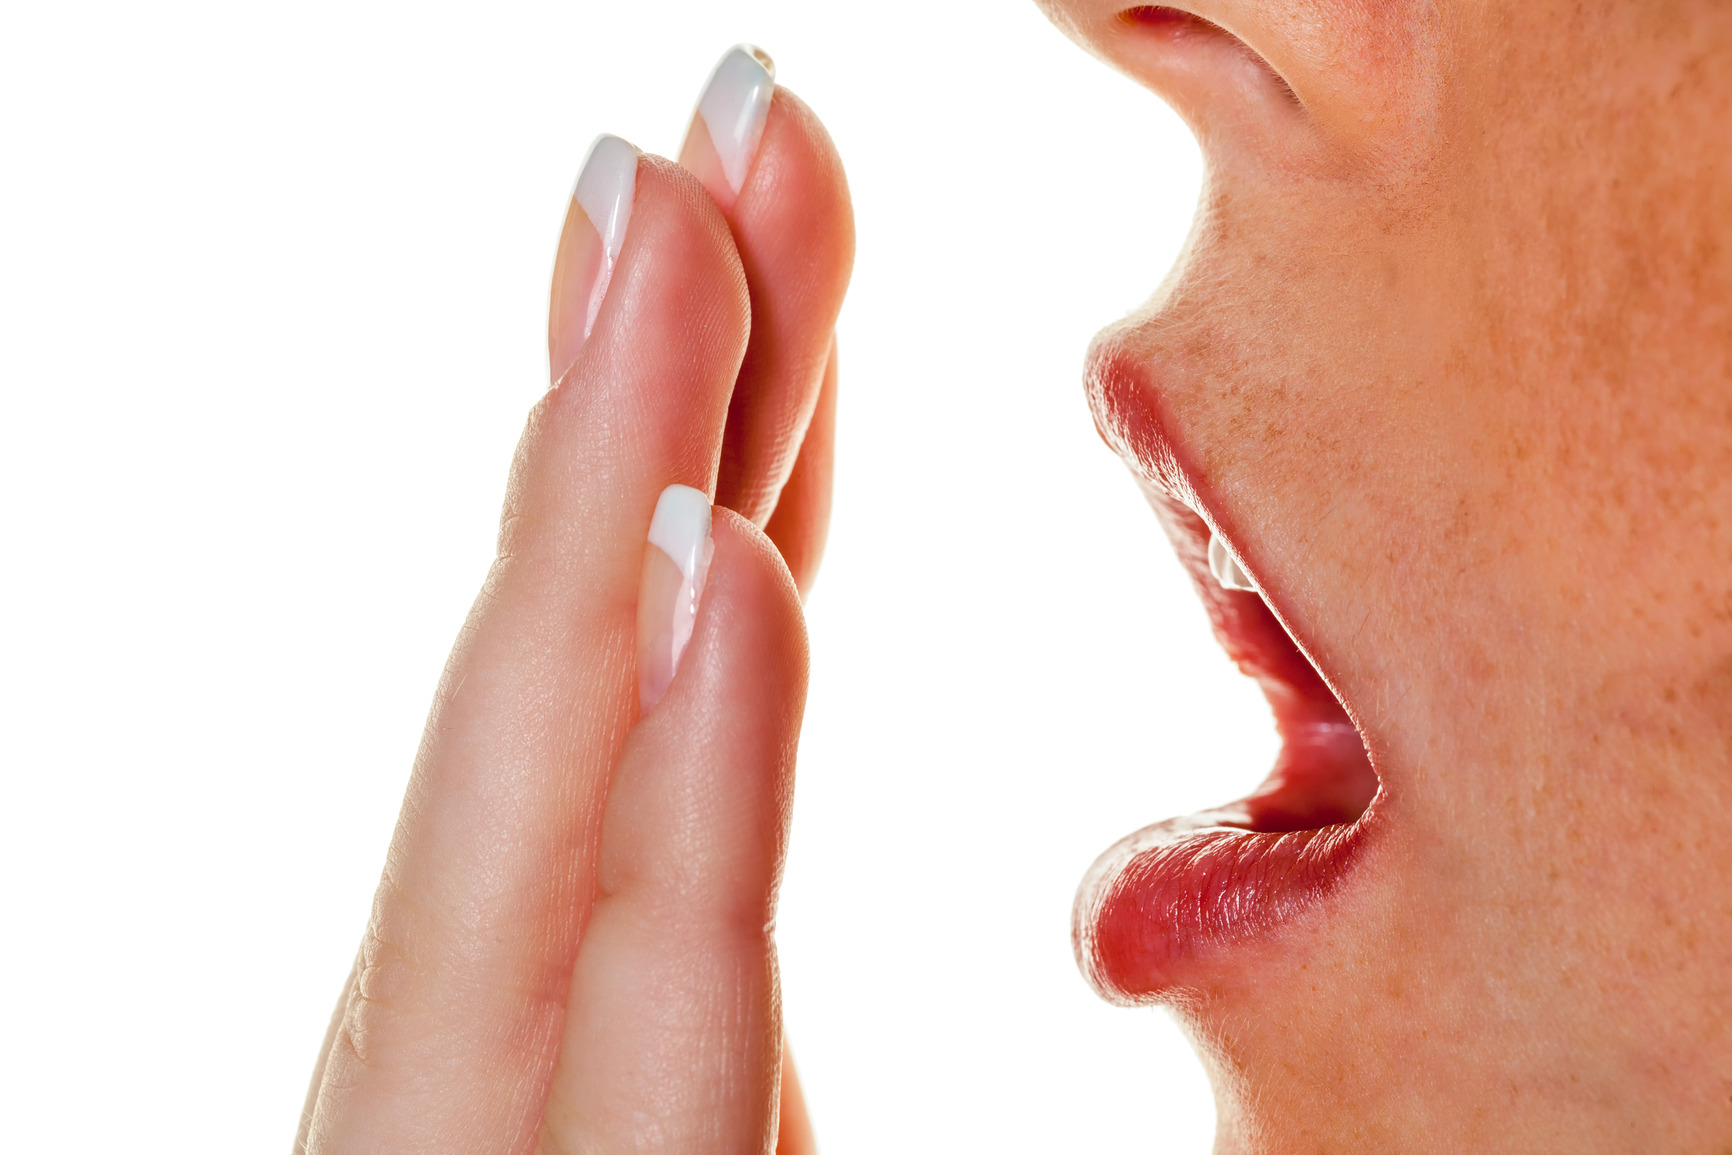 a young woman holds in her hand to her mouth to sneeze. halitosis and bad breath